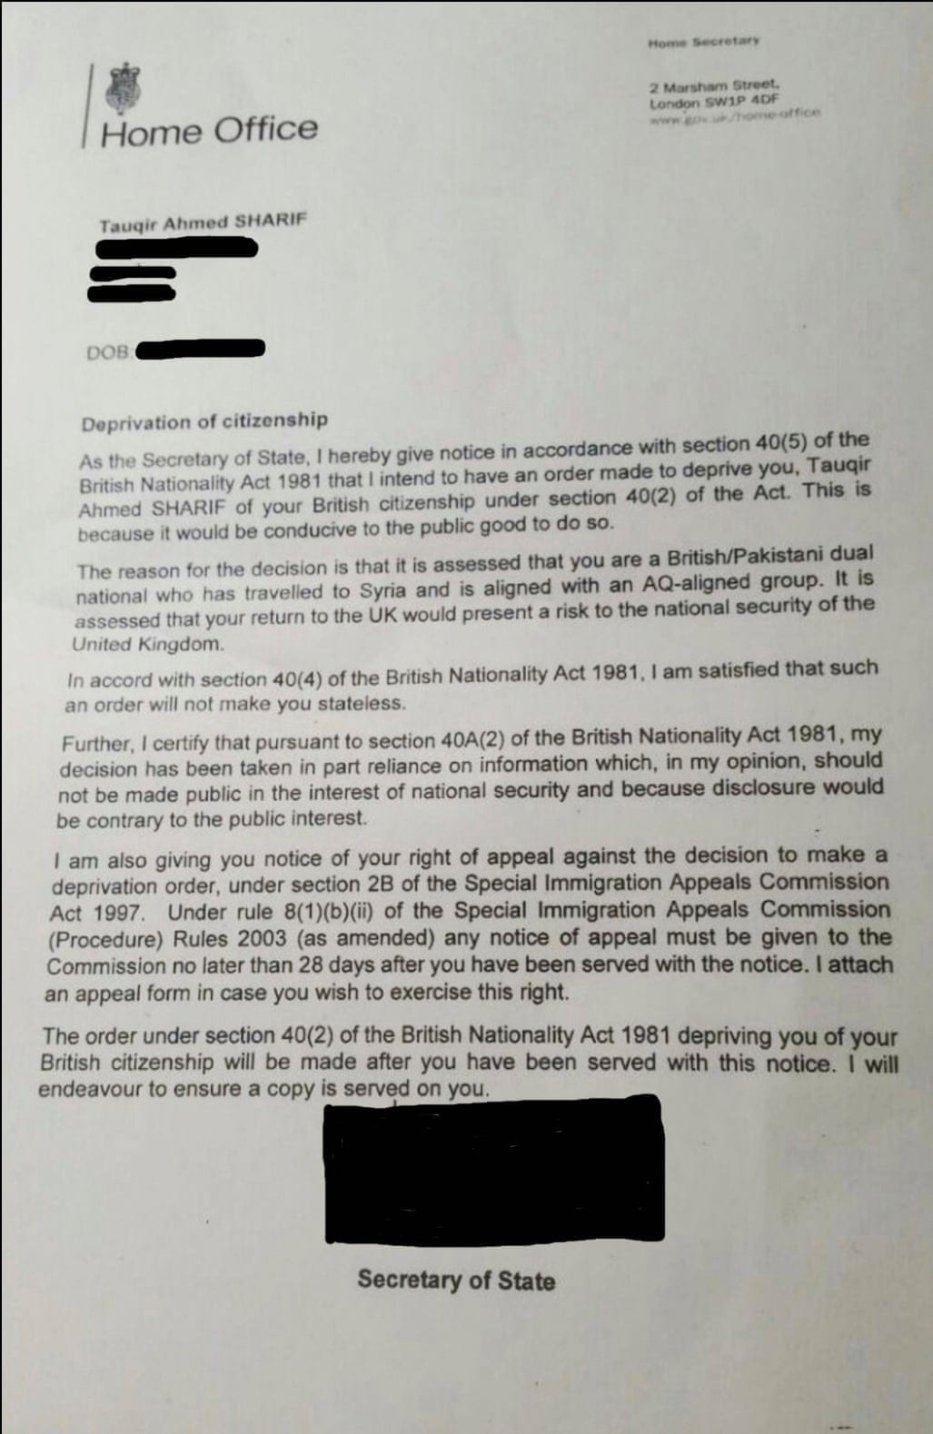 Letter from the Home Office revoking the British citizenship of Tauqir Sharif